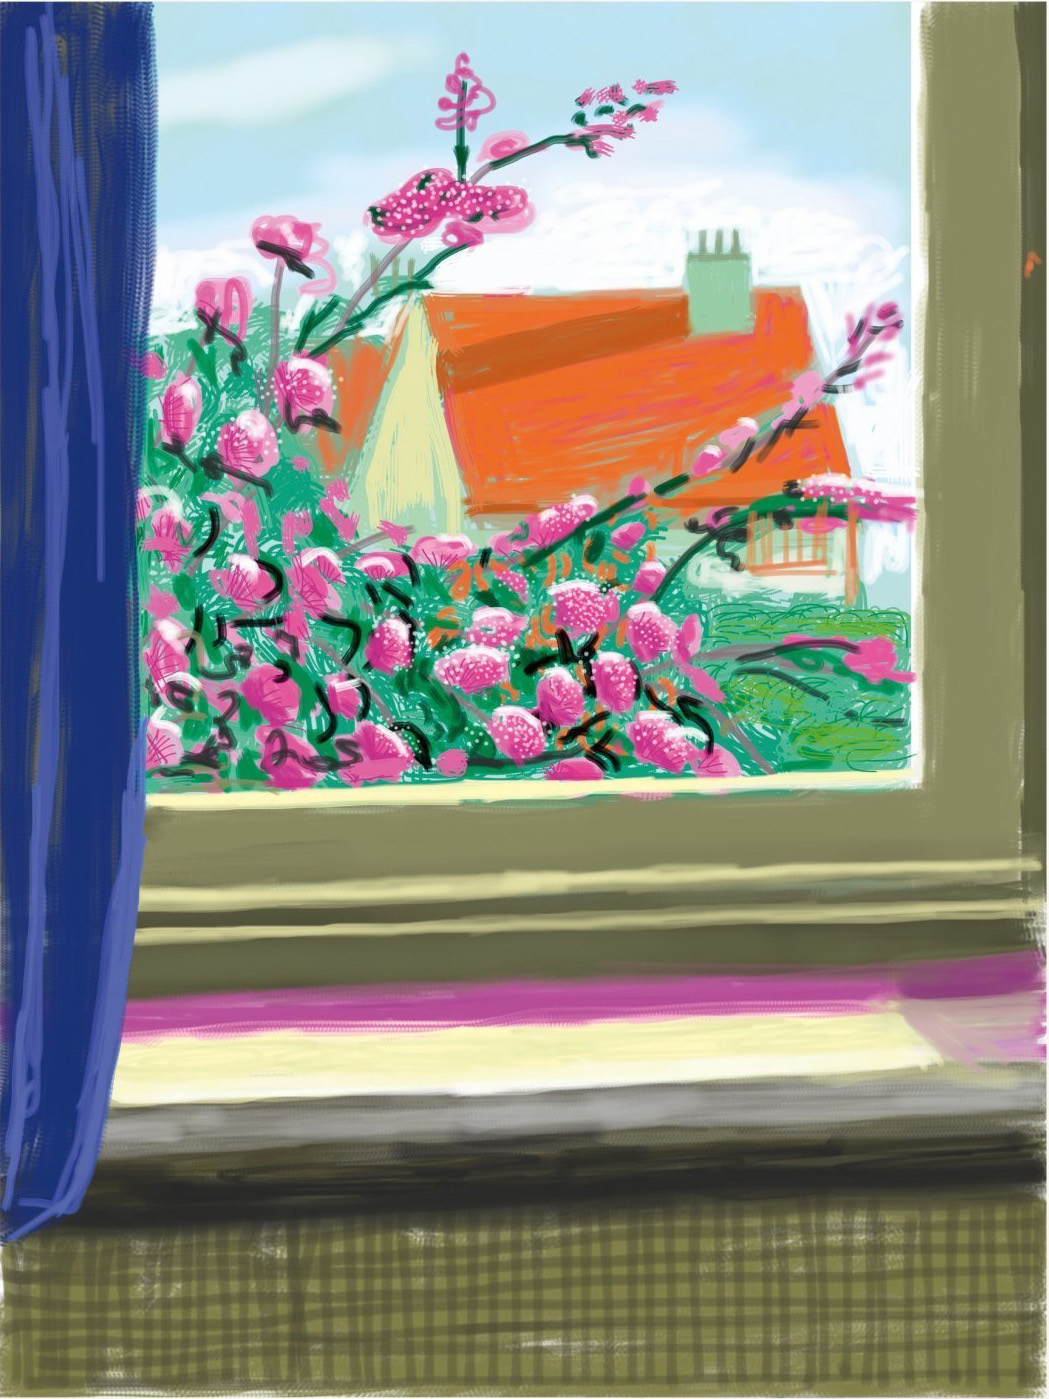 David Hockney colorful iPad print My Window with flowers and roof